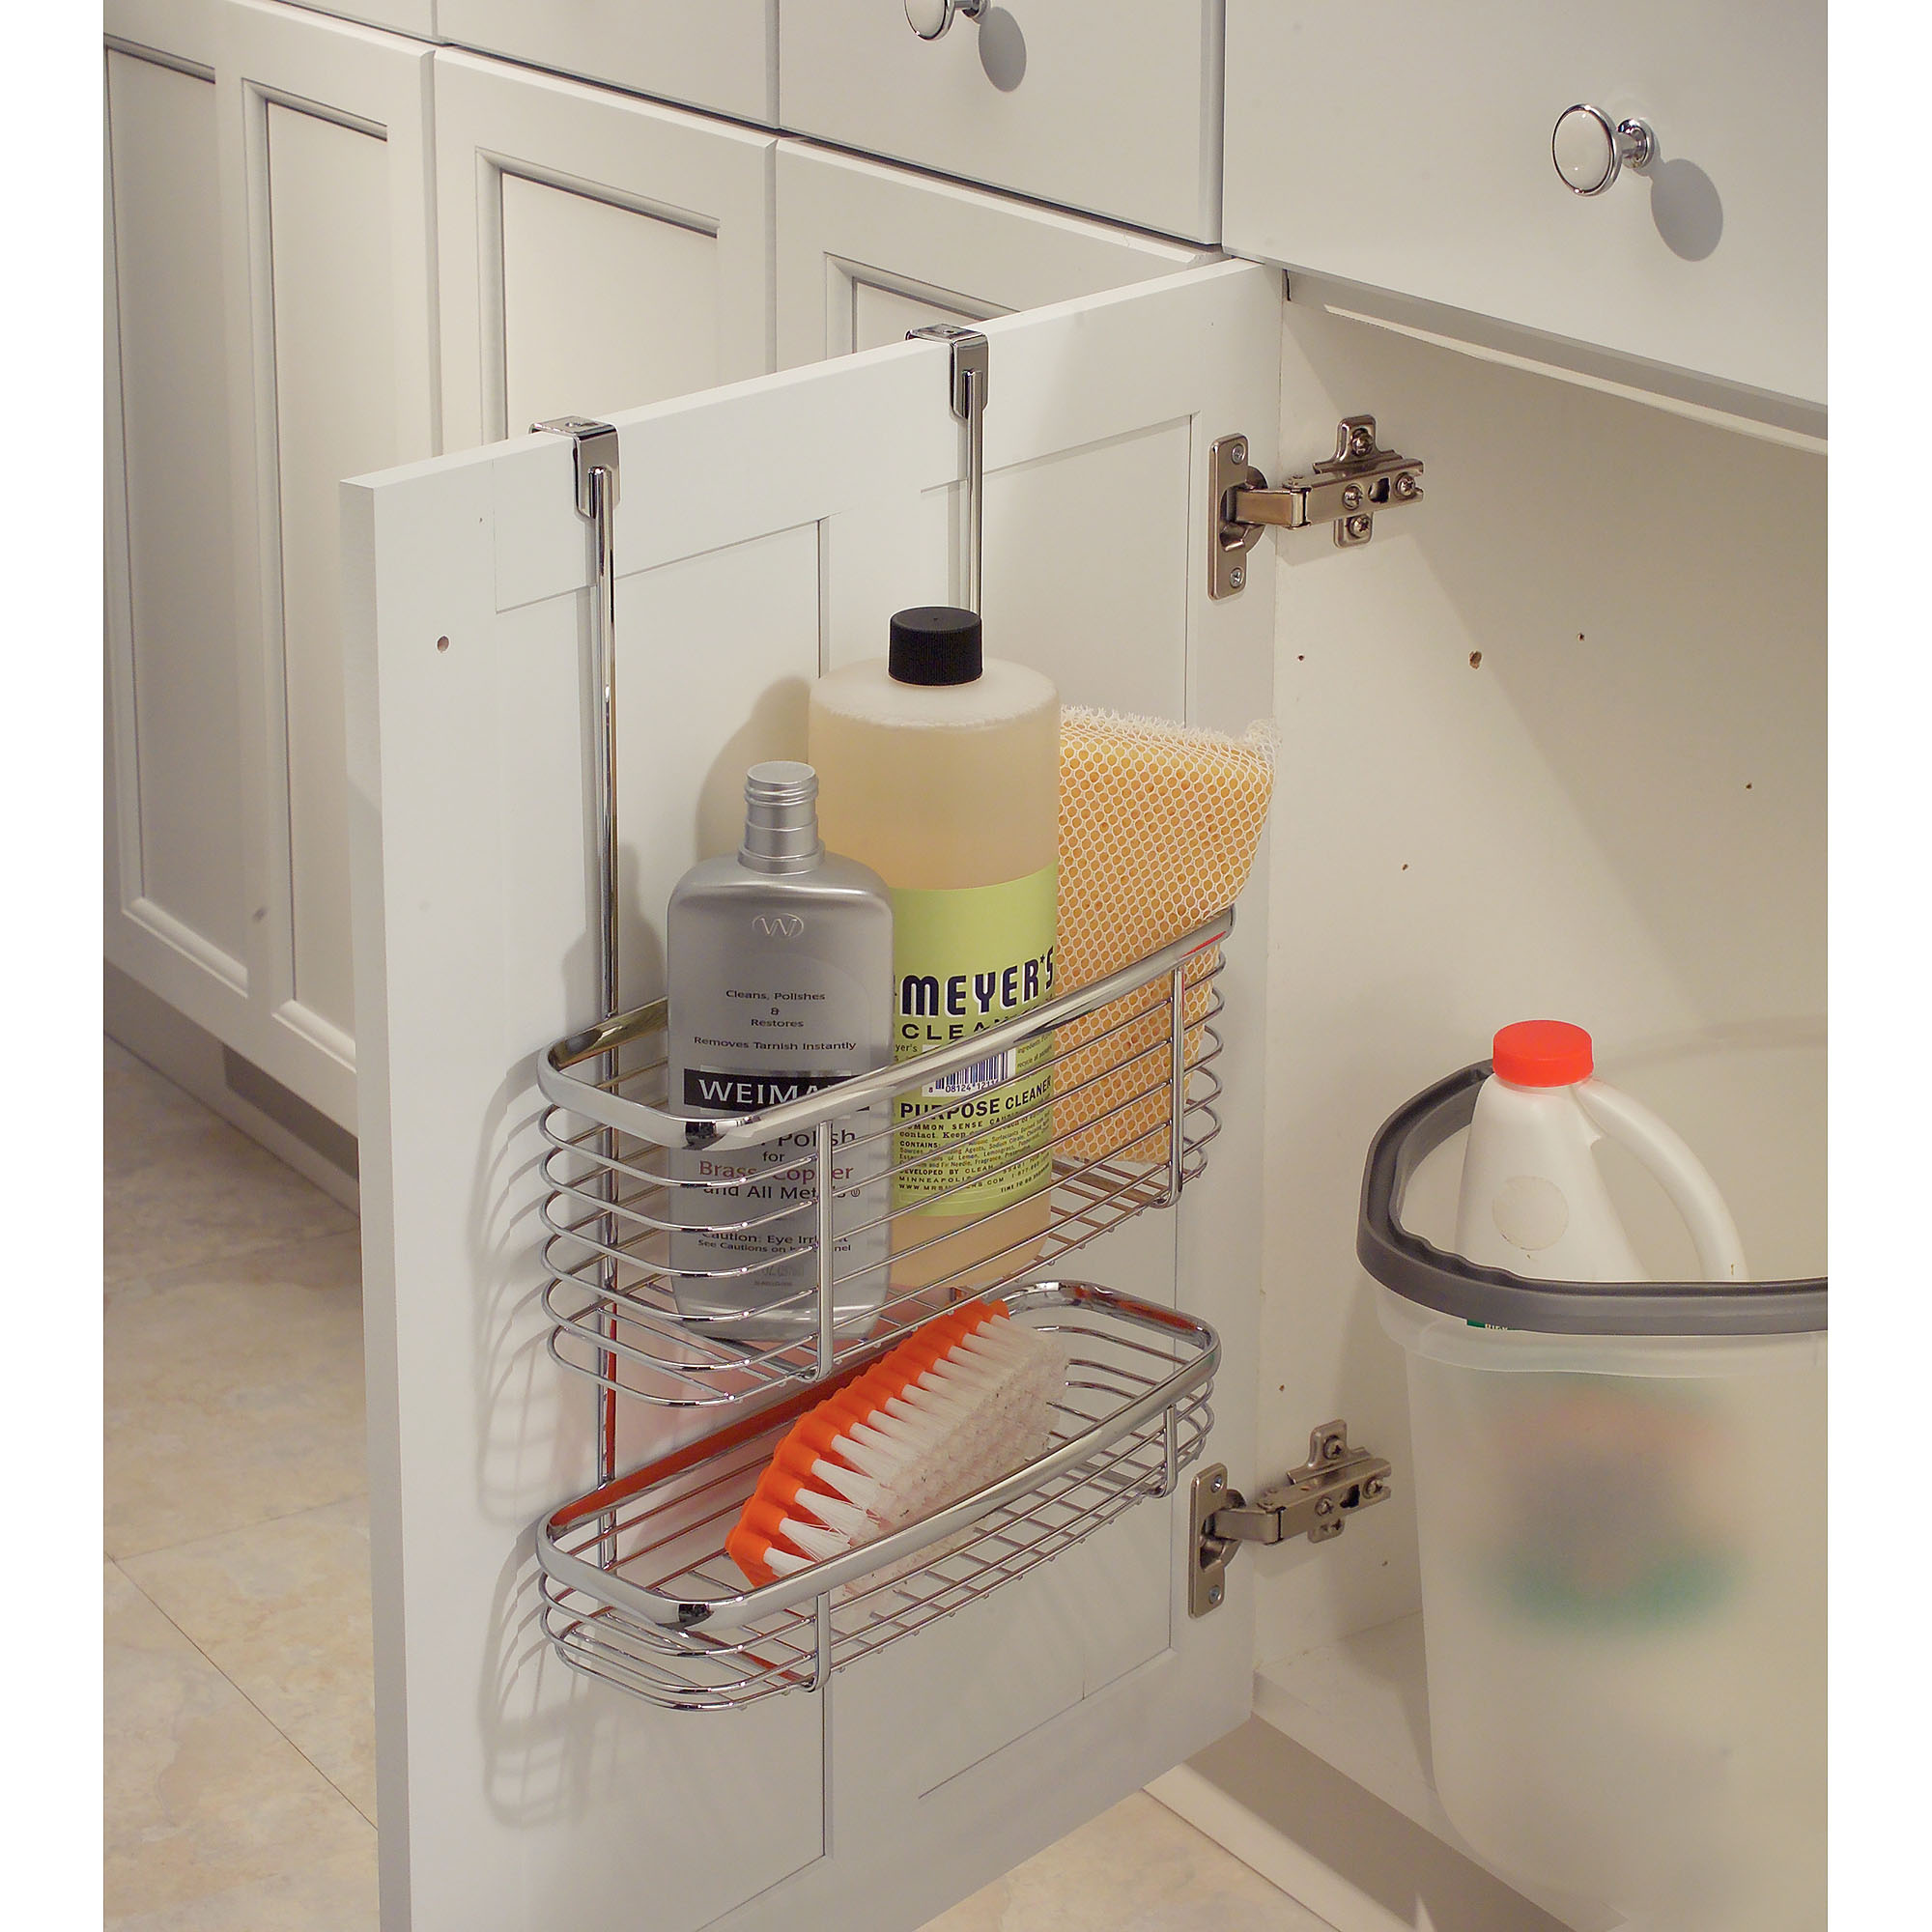 Bathroom cabinet door organizer - Bathroom Cabinet Door Organizer 2